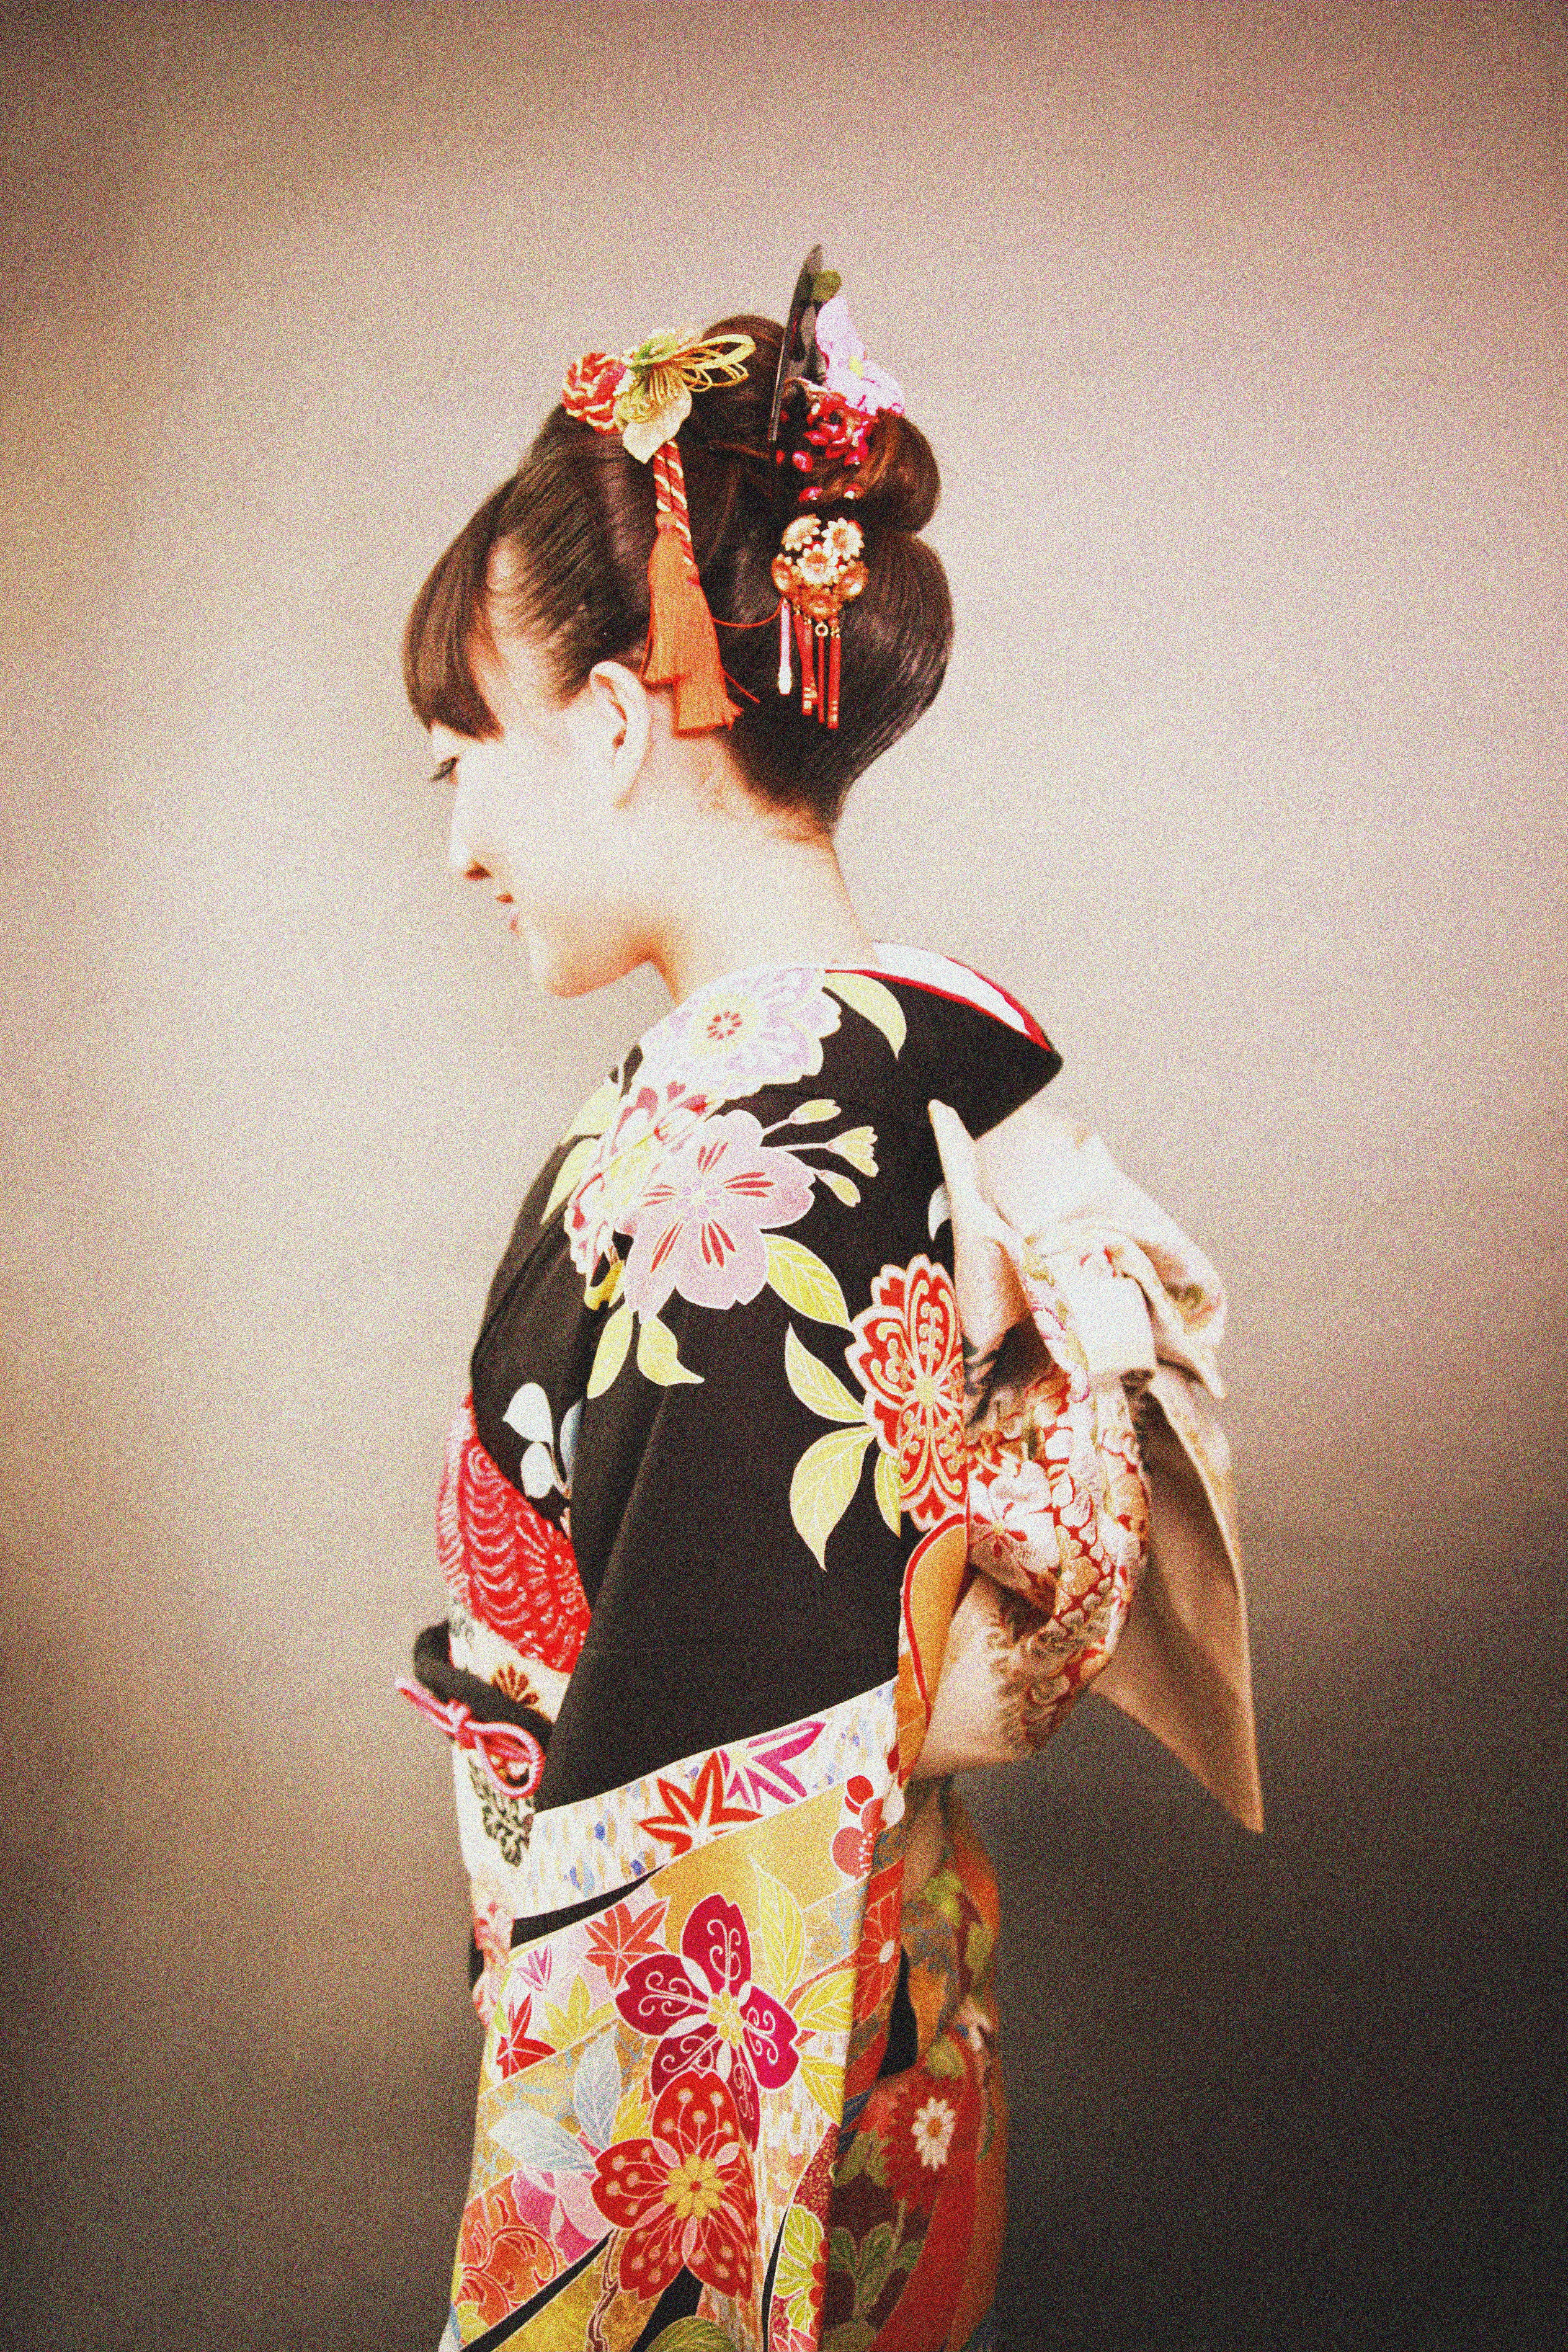 Woman in Black Yellow and Red Floral Kimuno Dress